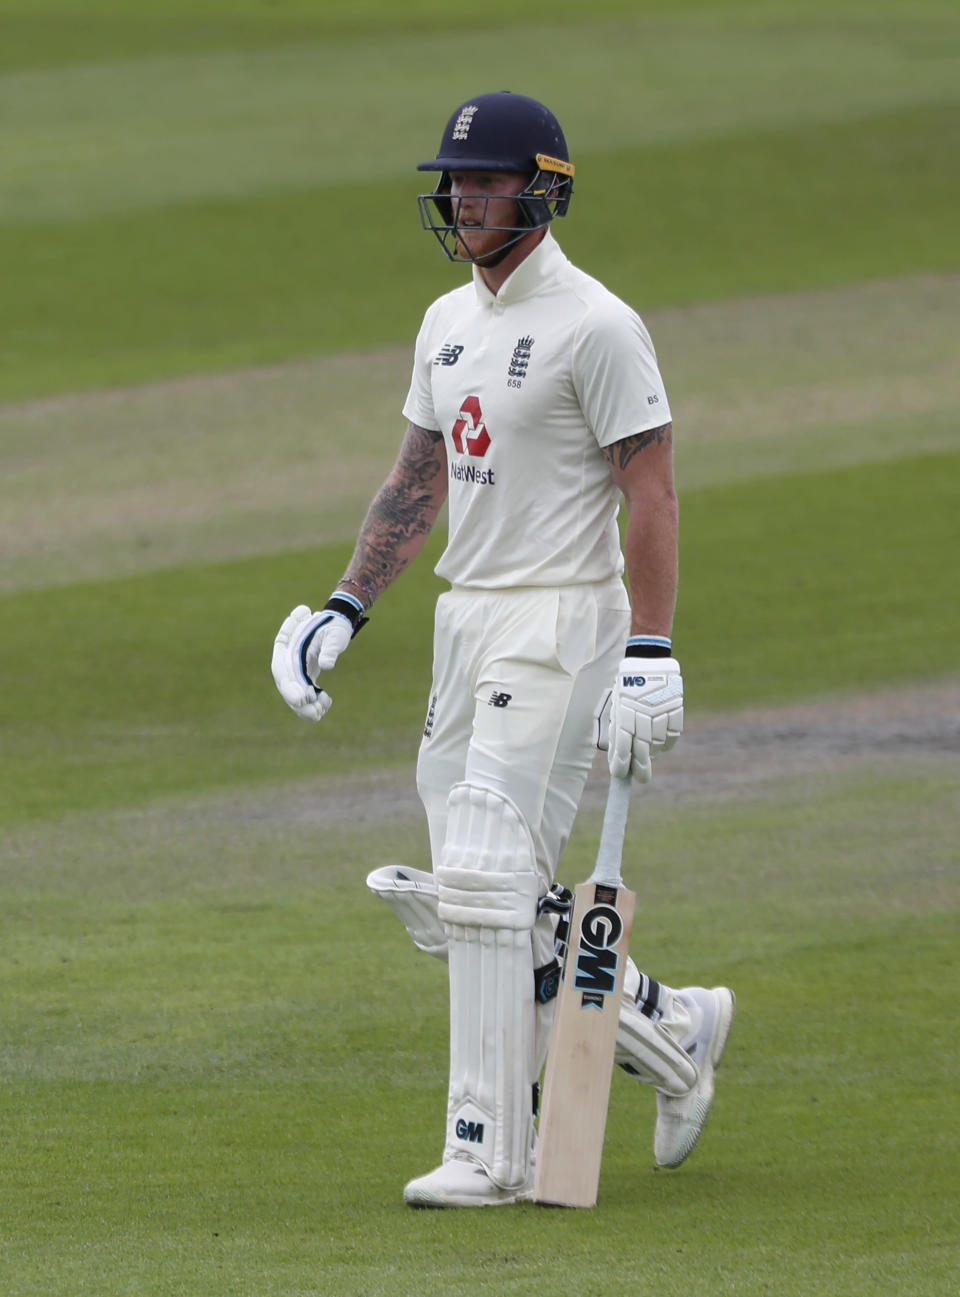 England's Ben Stokes walks off the field after being dismissed by Pakistan's Yasir Shah during the fourth day of the first cricket Test match between England and Pakistan at Old Trafford in Manchester, England, Saturday, Aug. 8, 2020. (Lee Smith/Pool via AP)